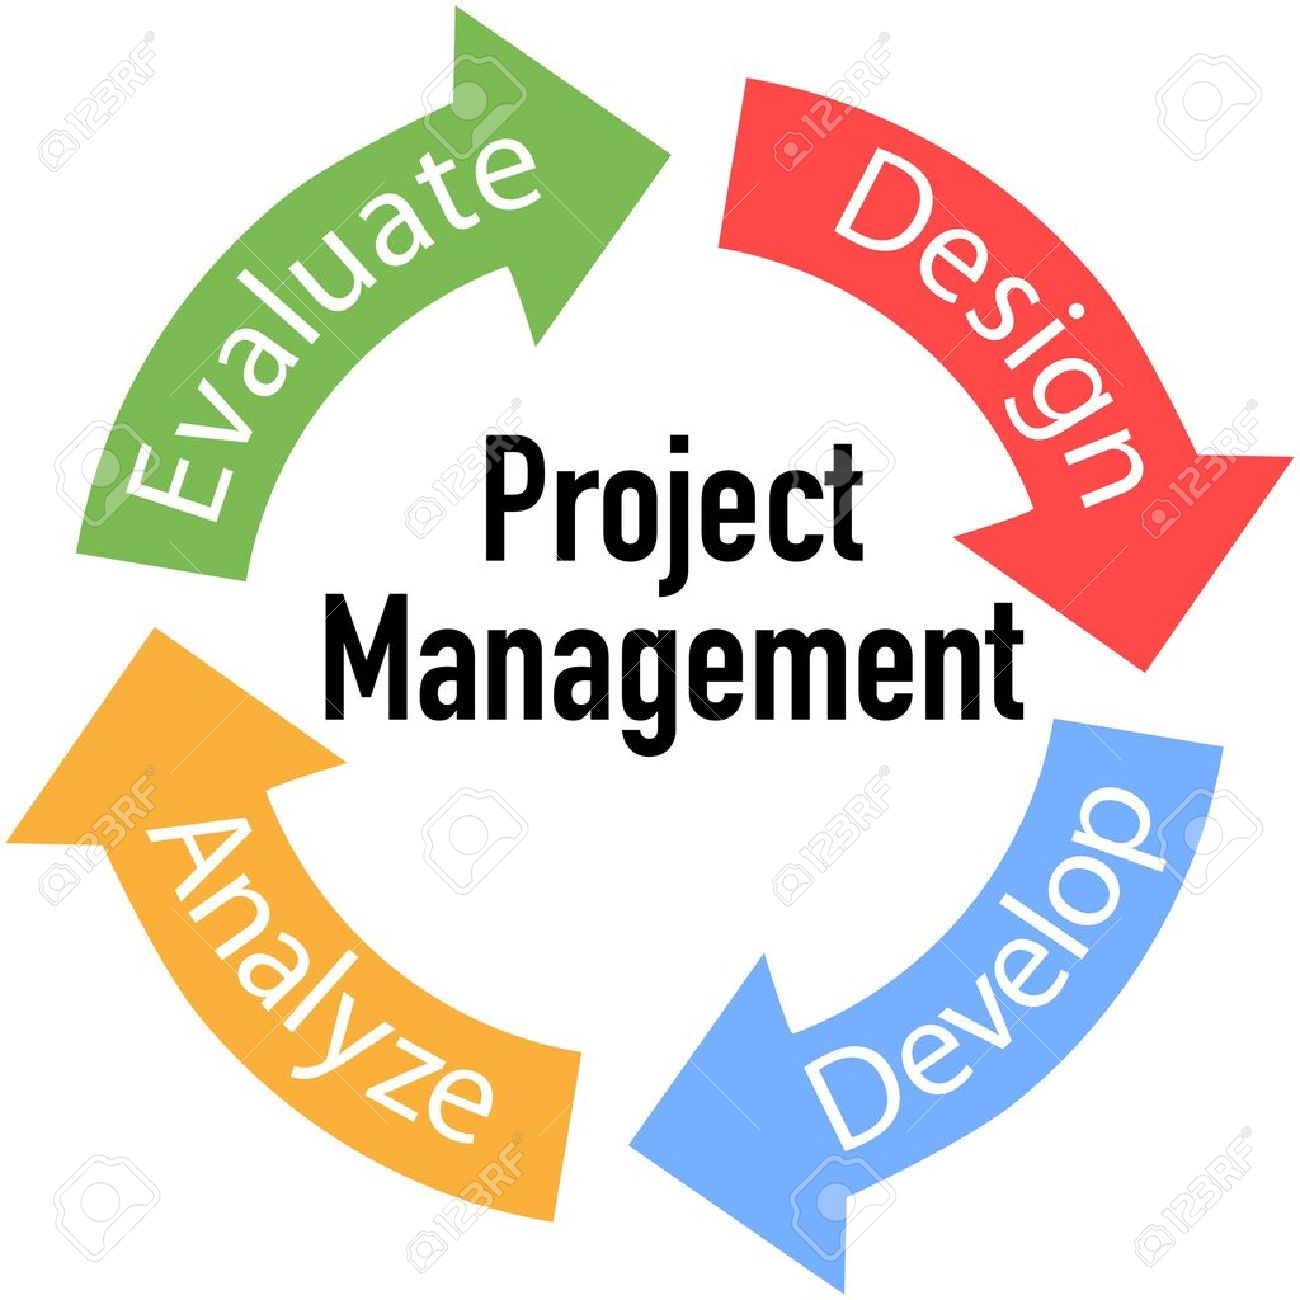 Project Management business product development arrows cycle Stock Vector - 13734935